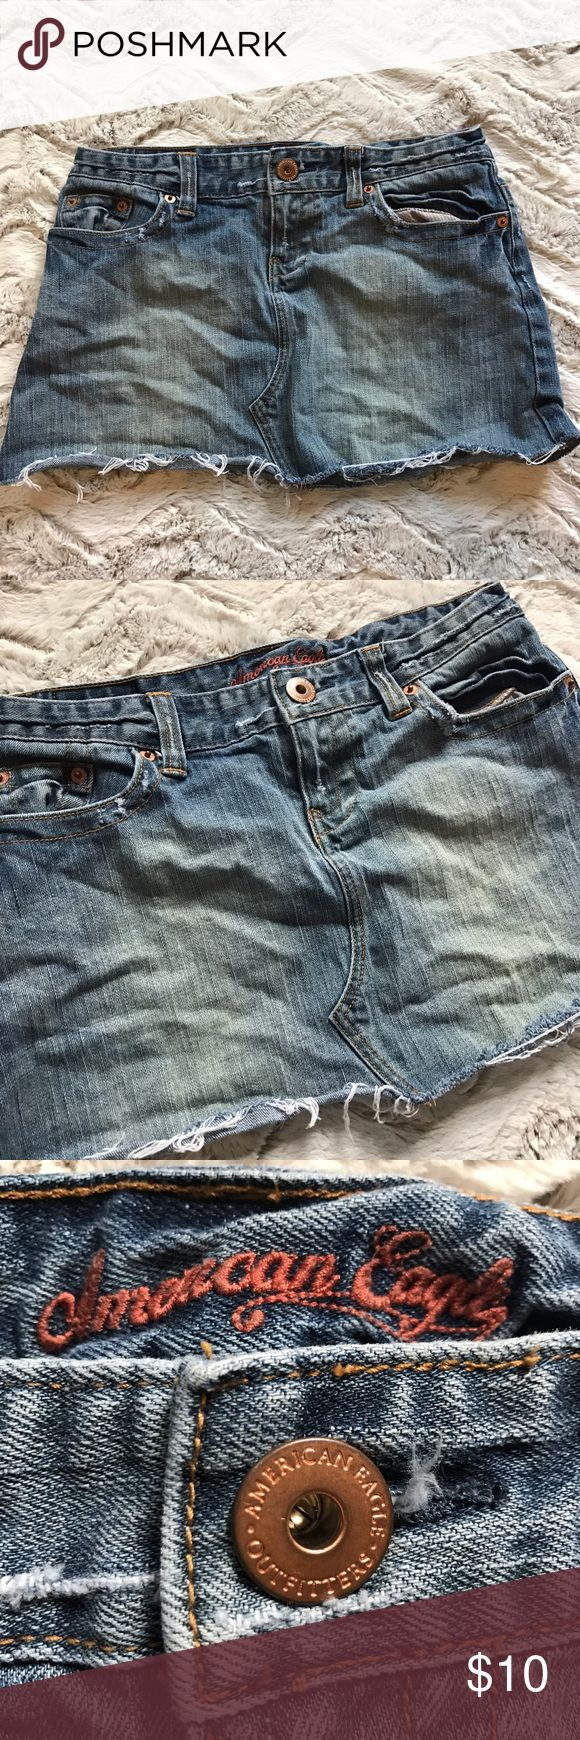 """American eagle short distressed mini Jean skirt 4 Distressed Jean skirt mini size 4✨ waist flat is approximately 14.5"""" and length approximately 11.5"""". Pockets on back and front ✨ American Eagle Outfitters Skirts Mini"""